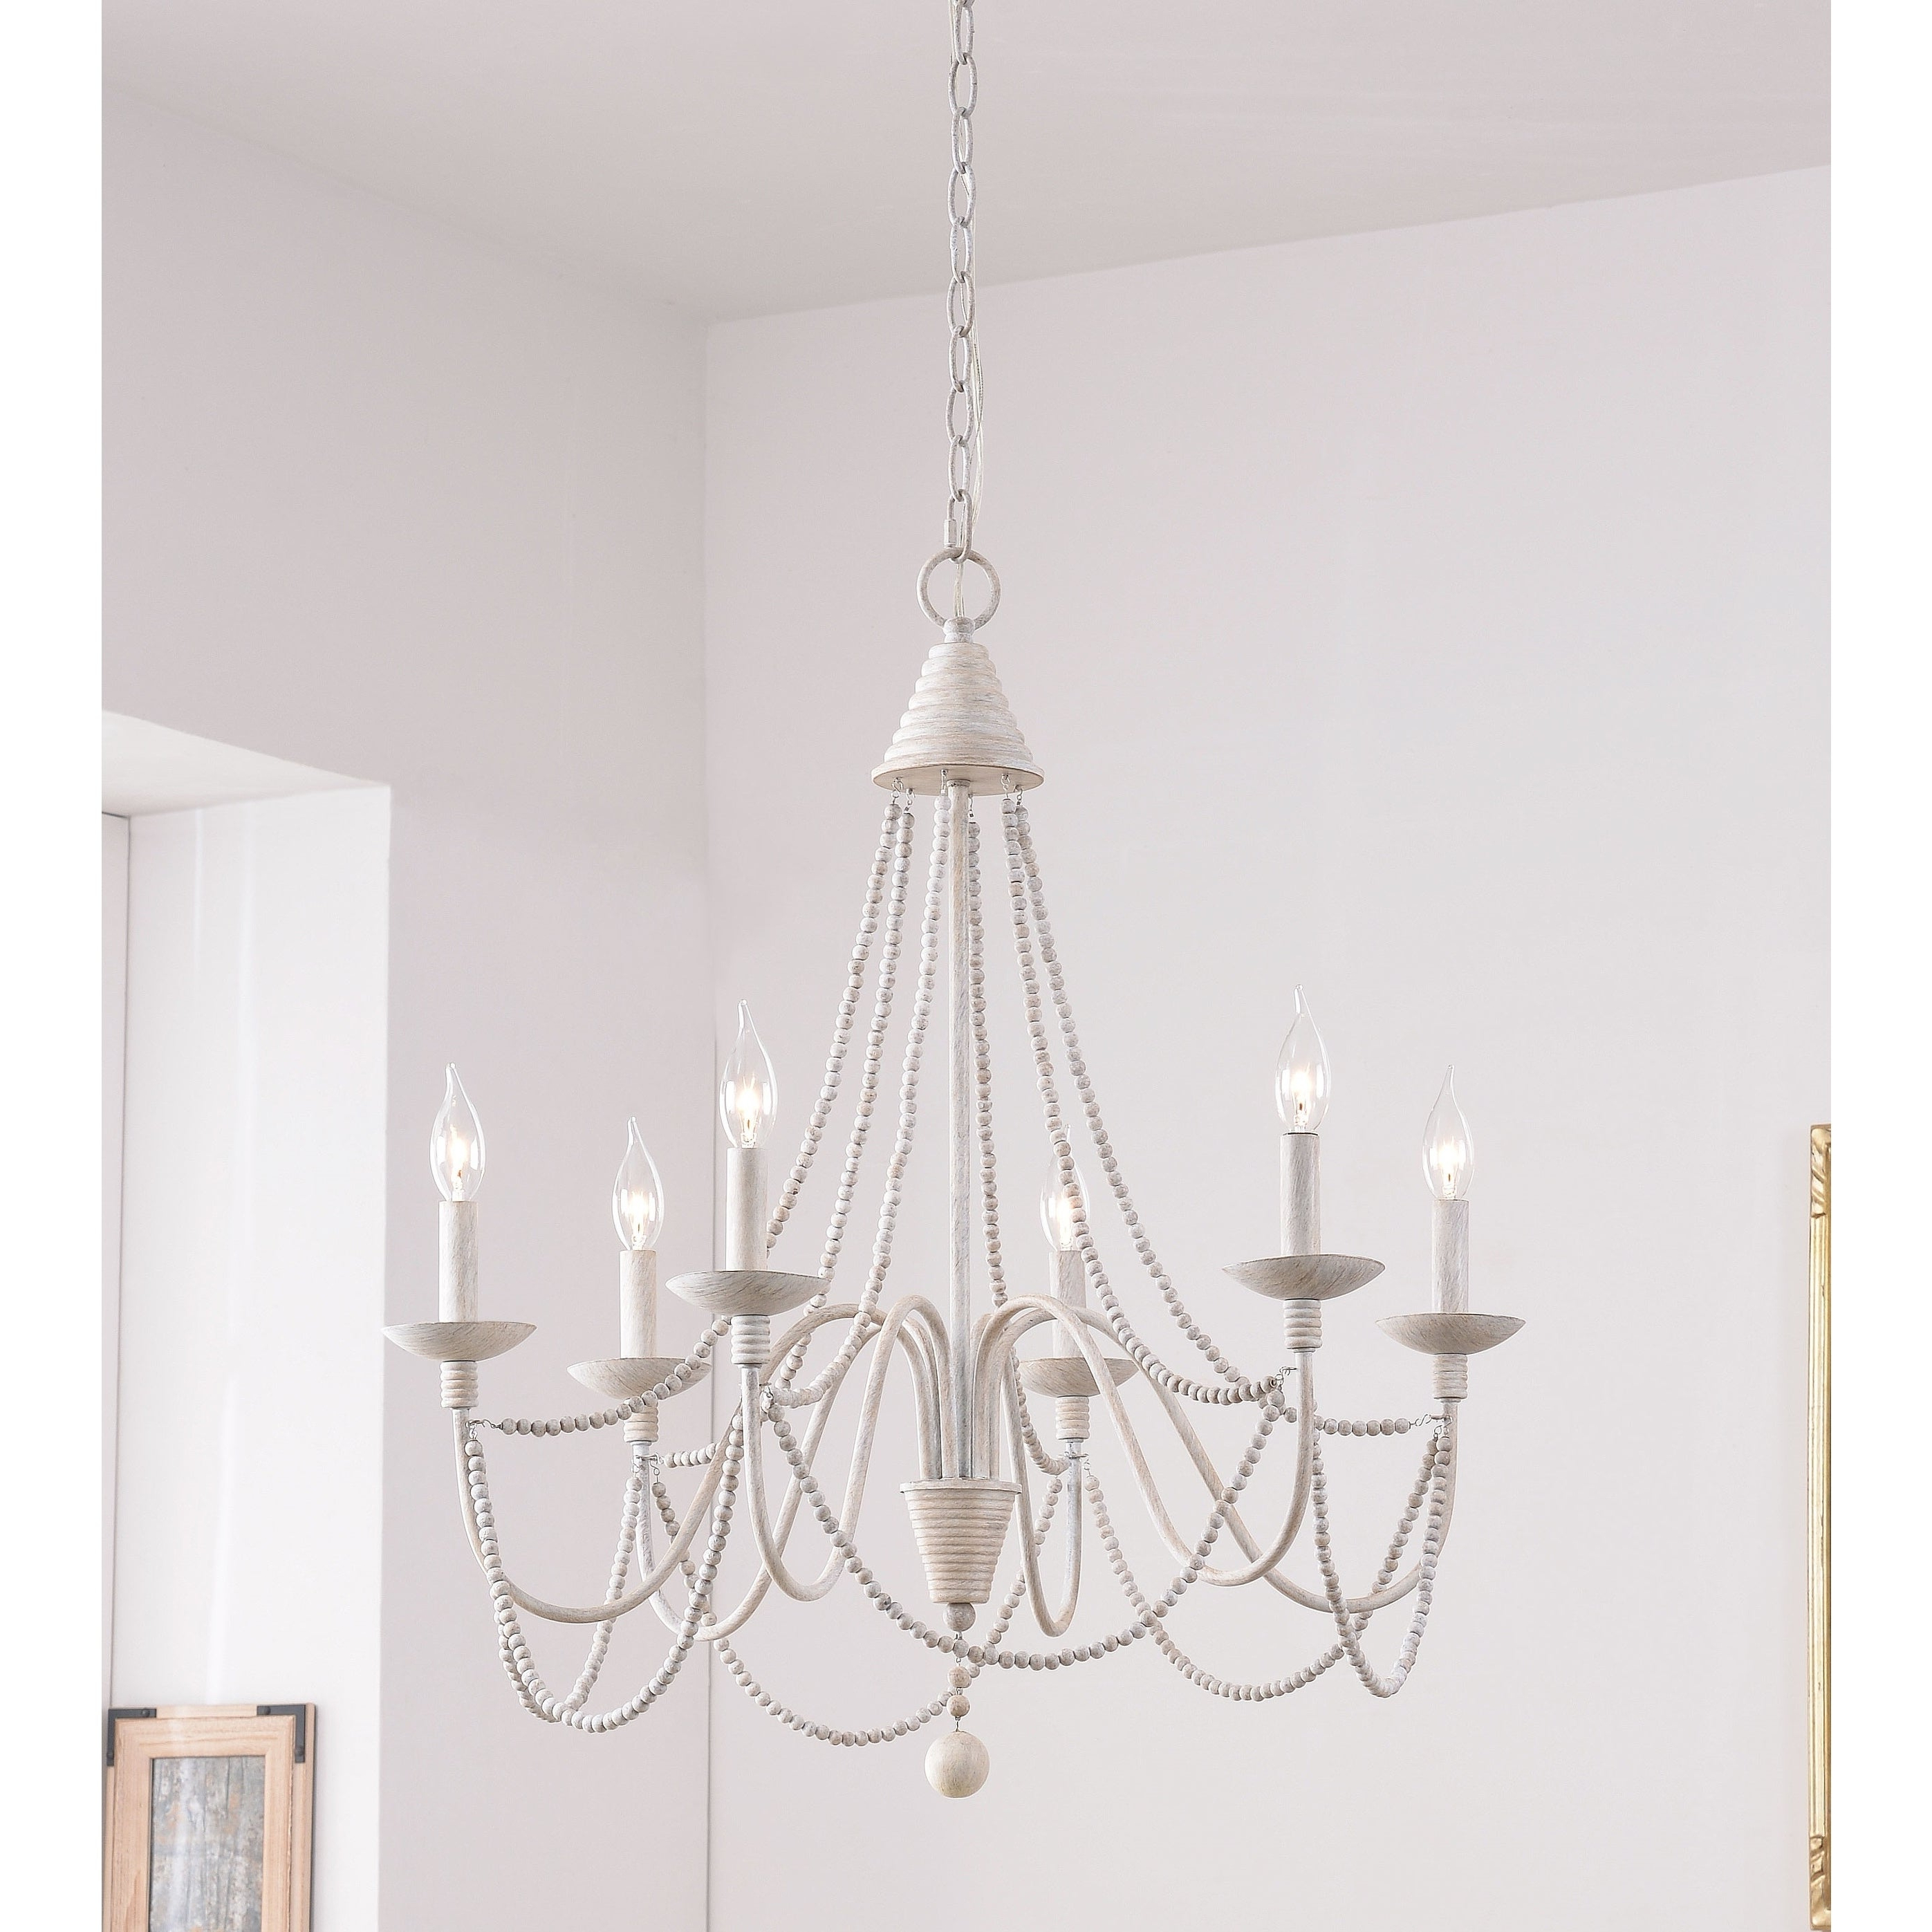 Shop Our Best Lighting Intended For Camilla 9 Light Candle Style Chandeliers (View 18 of 25)